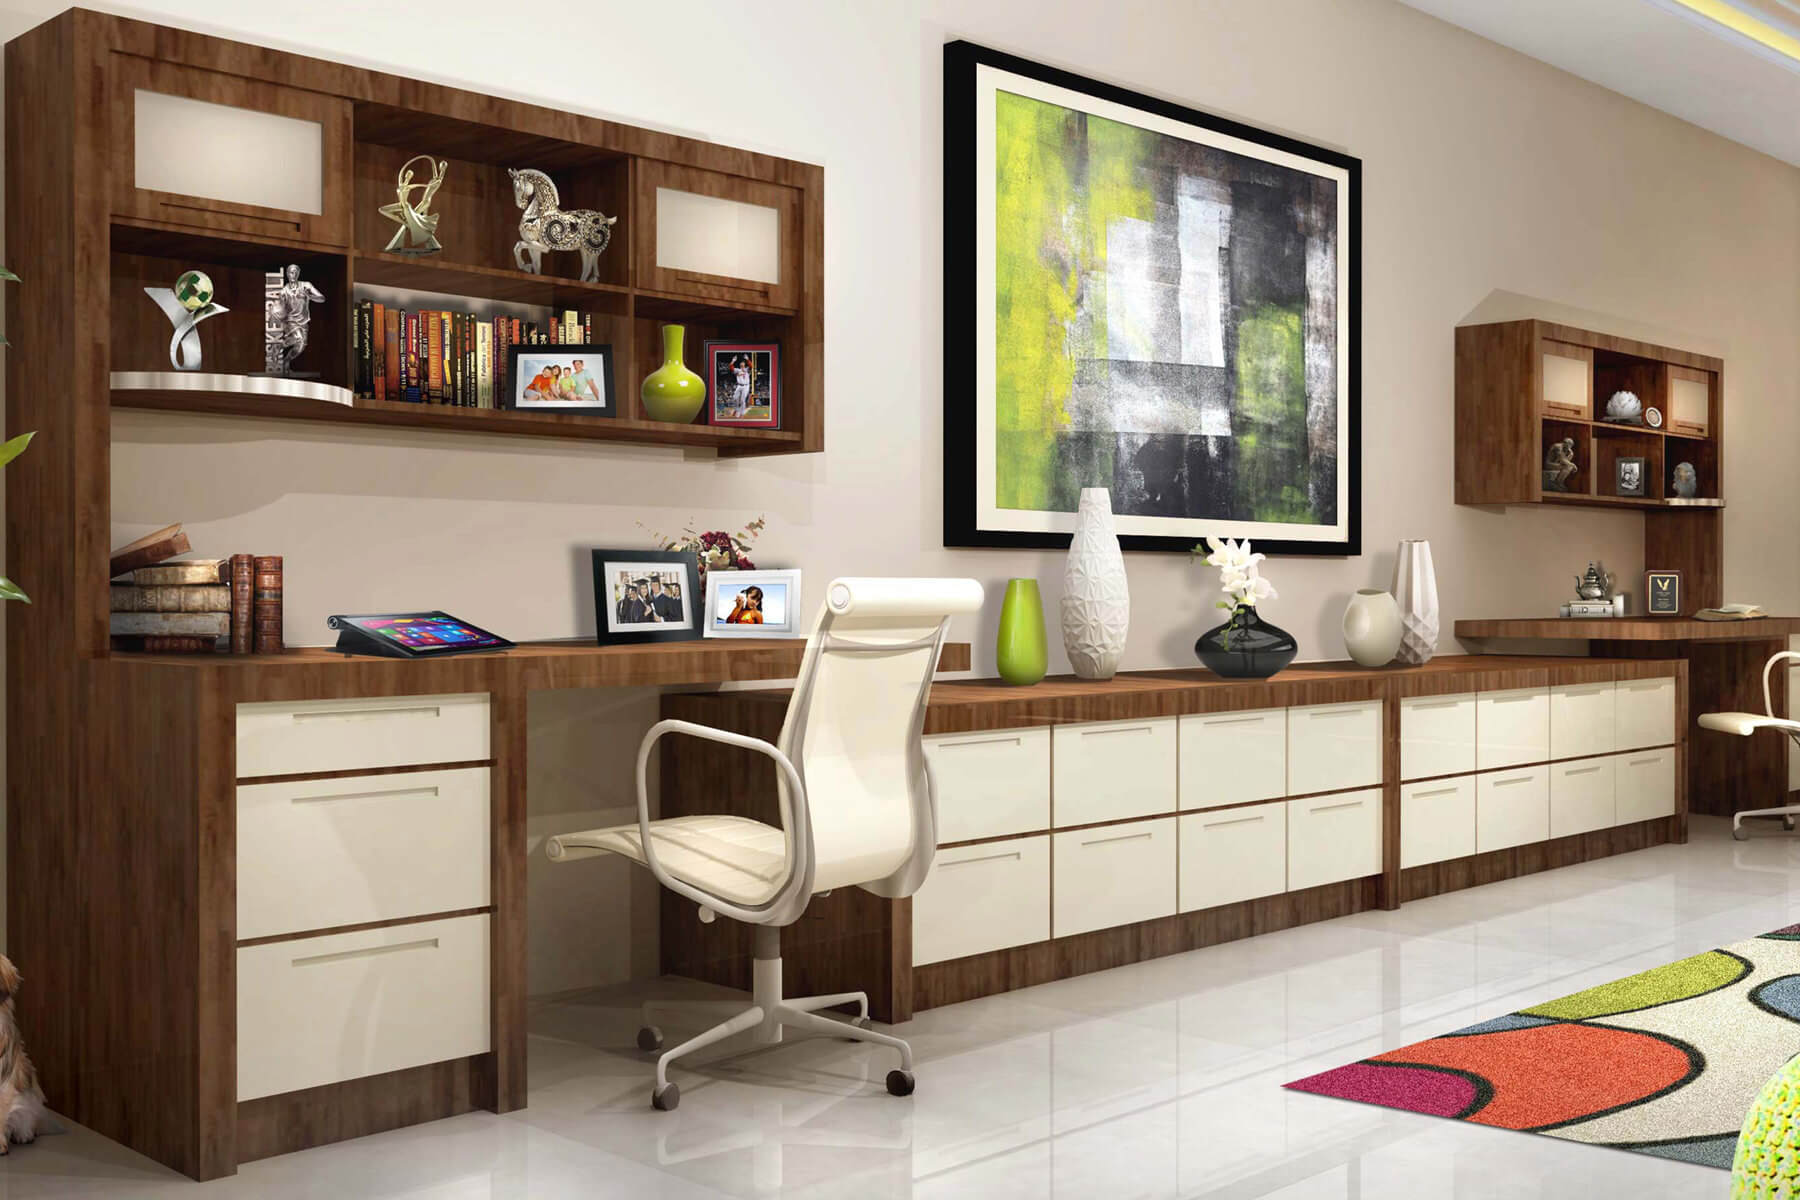 26 home office designs desks shelving by closet factory for Home office cabinet design ideas